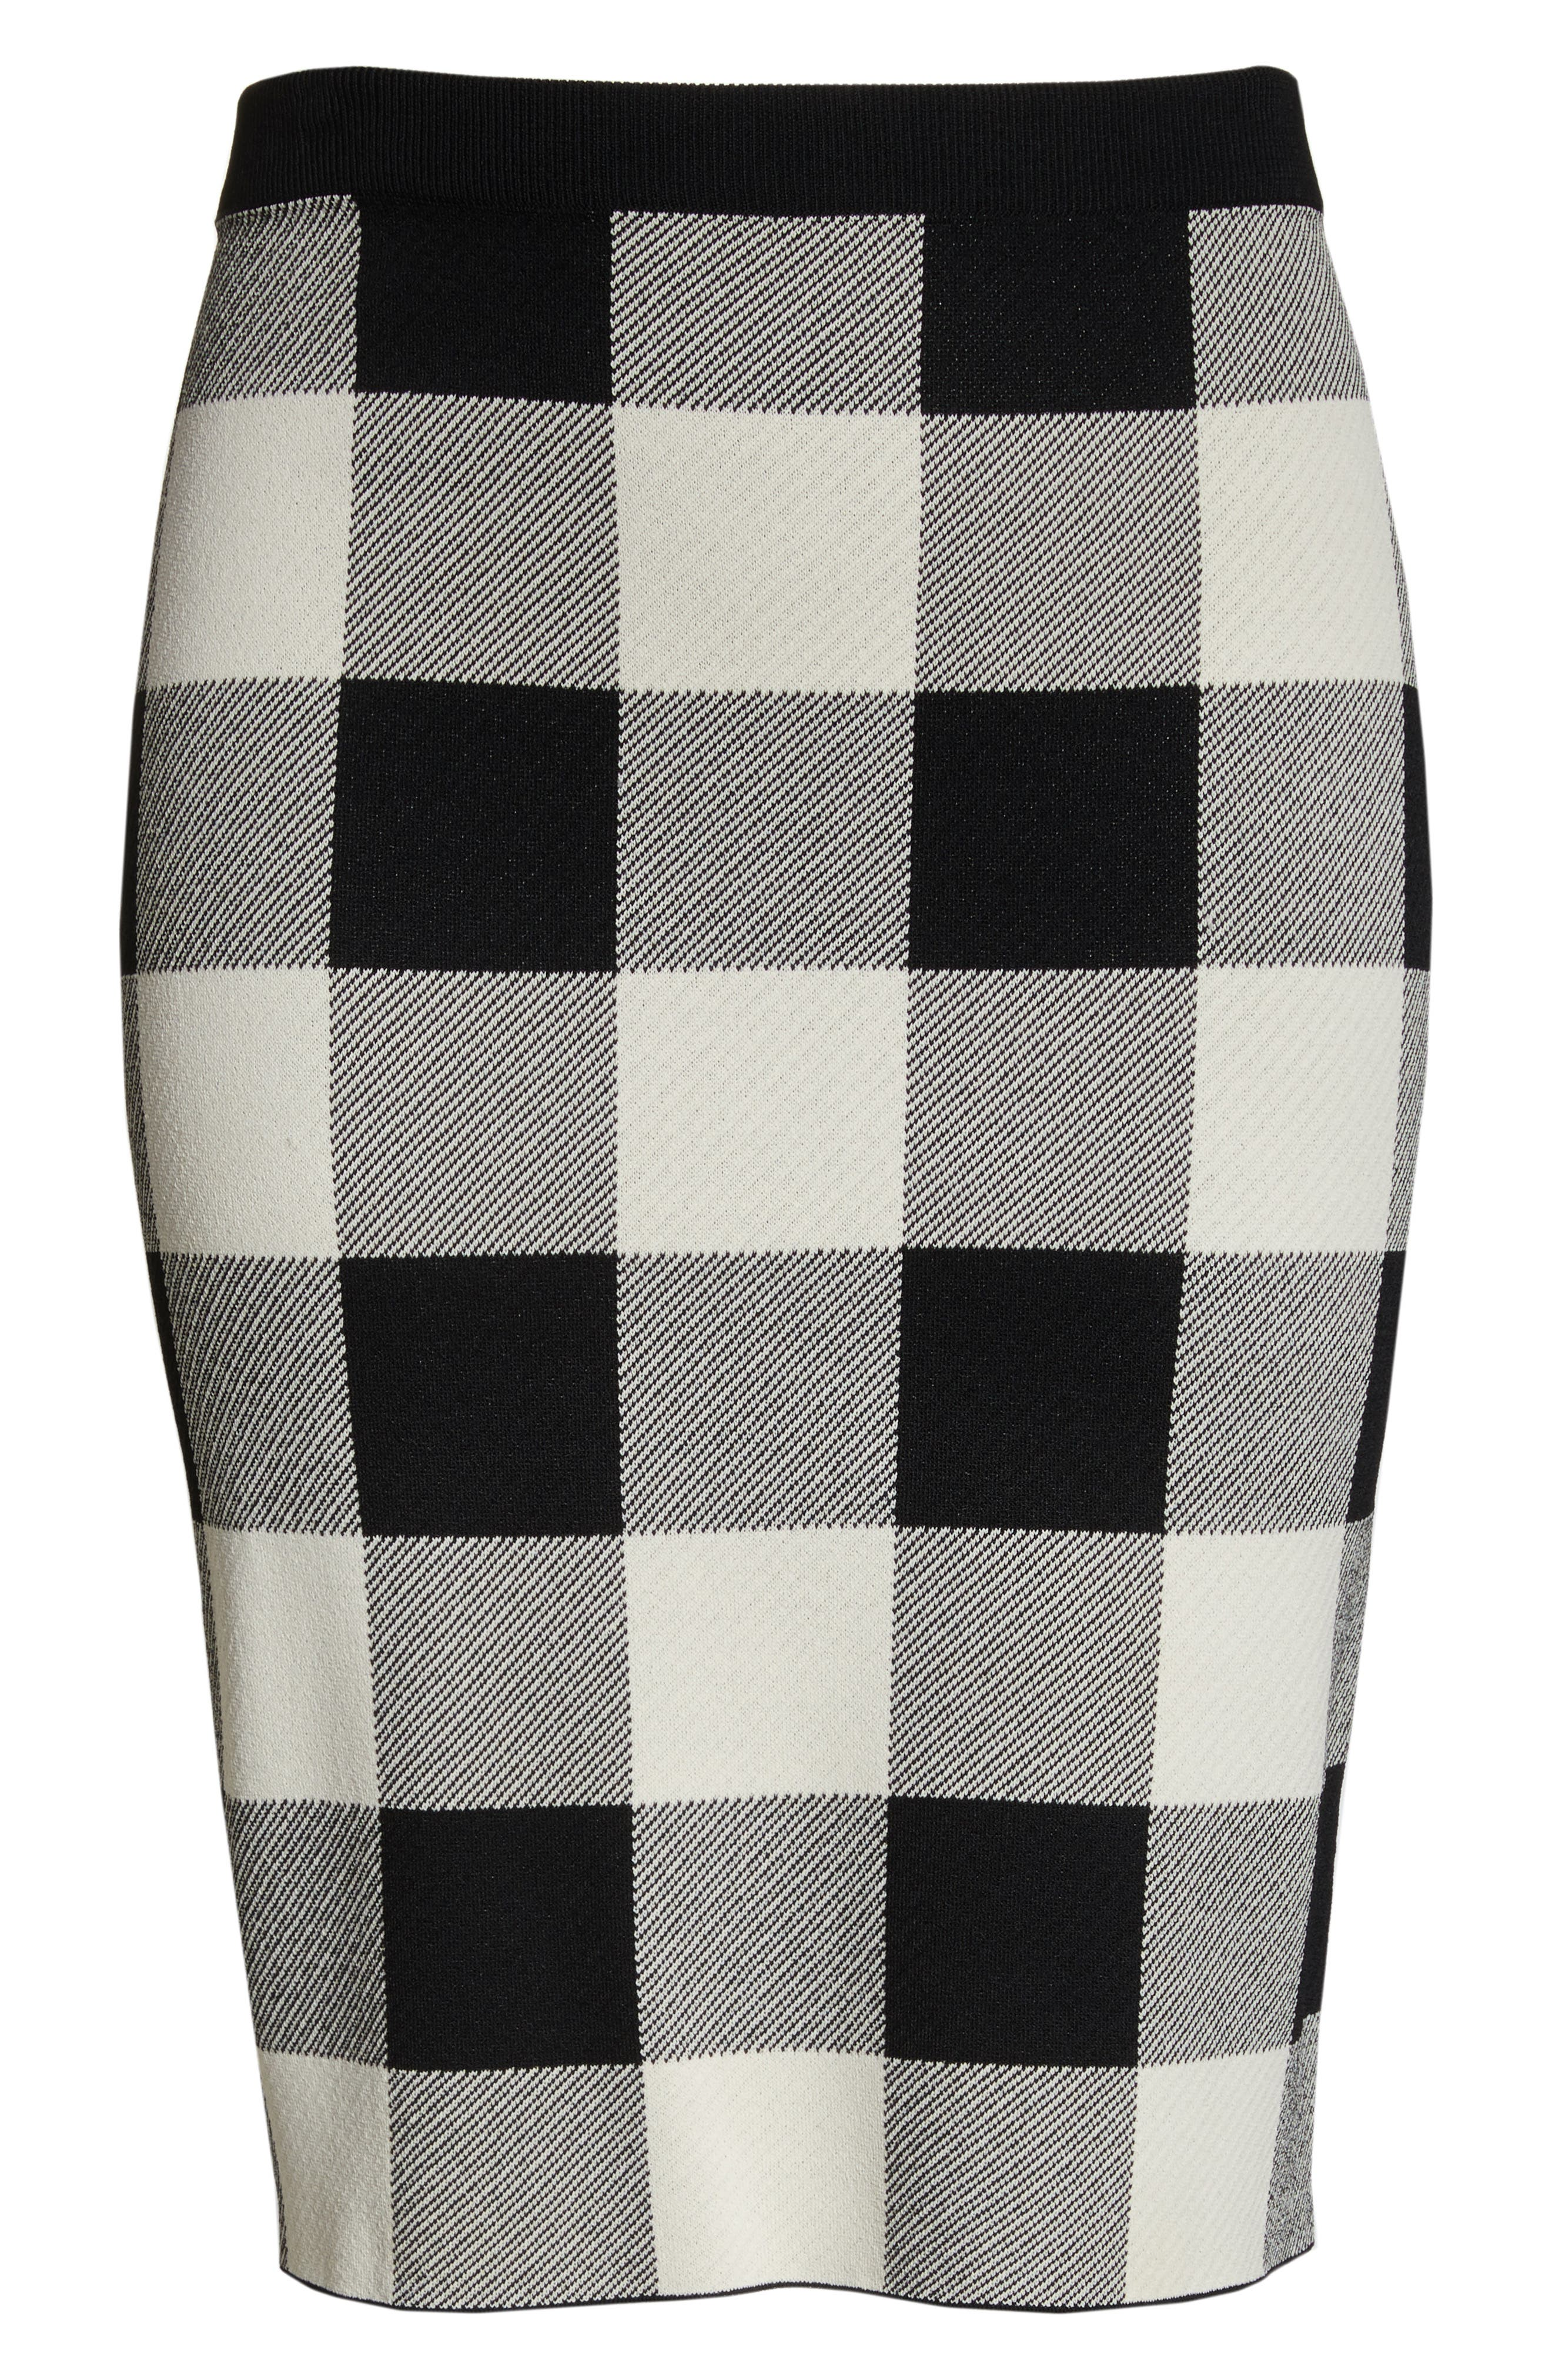 RACHEL RACHEL ROY,                             Raj Sweater Skirt,                             Alternate thumbnail 6, color,                             BLACK/CREAM